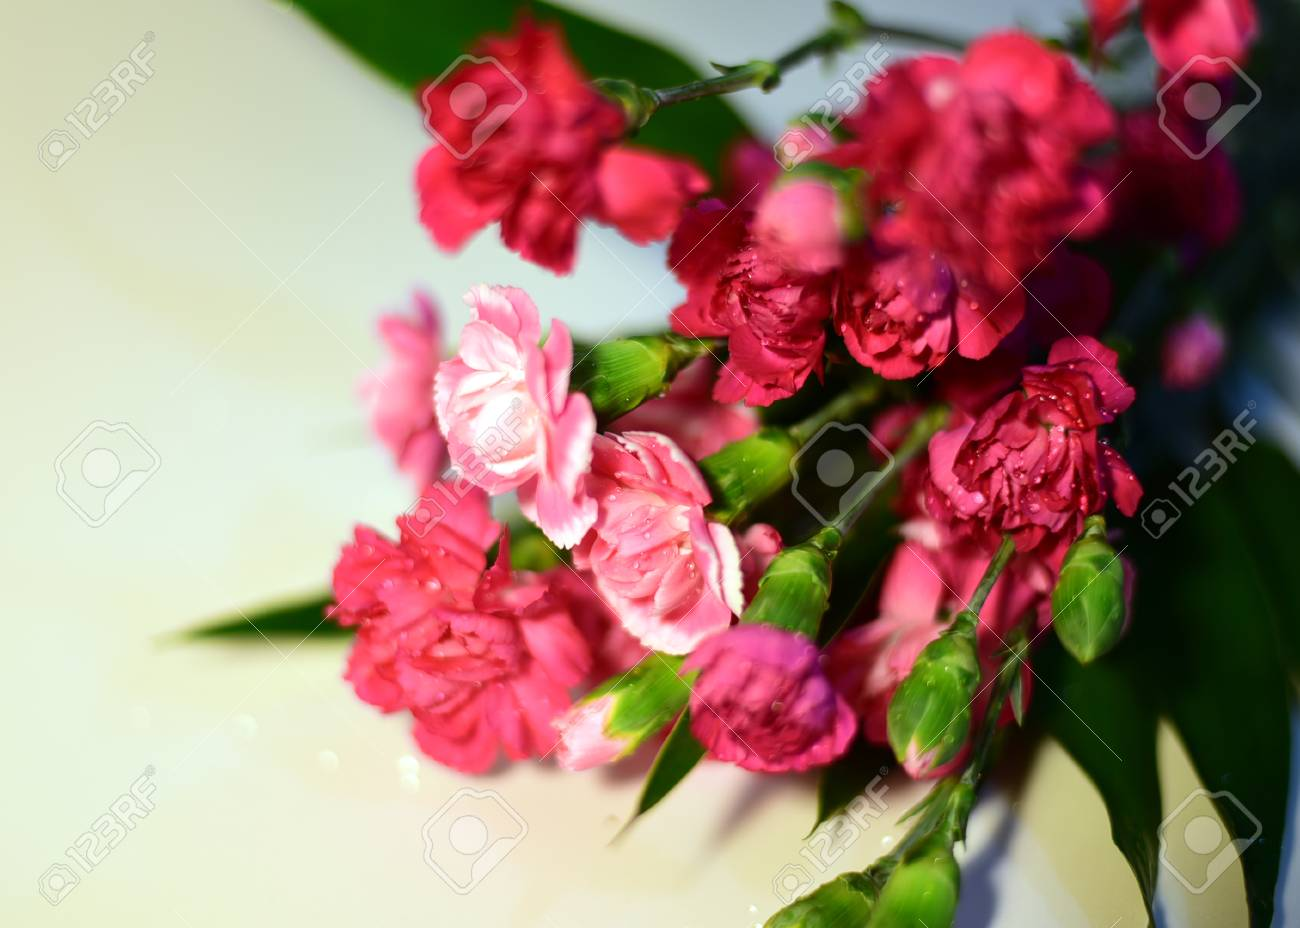 Spray Carnation Is One Of Carnation Types Which Is Mini Carnations